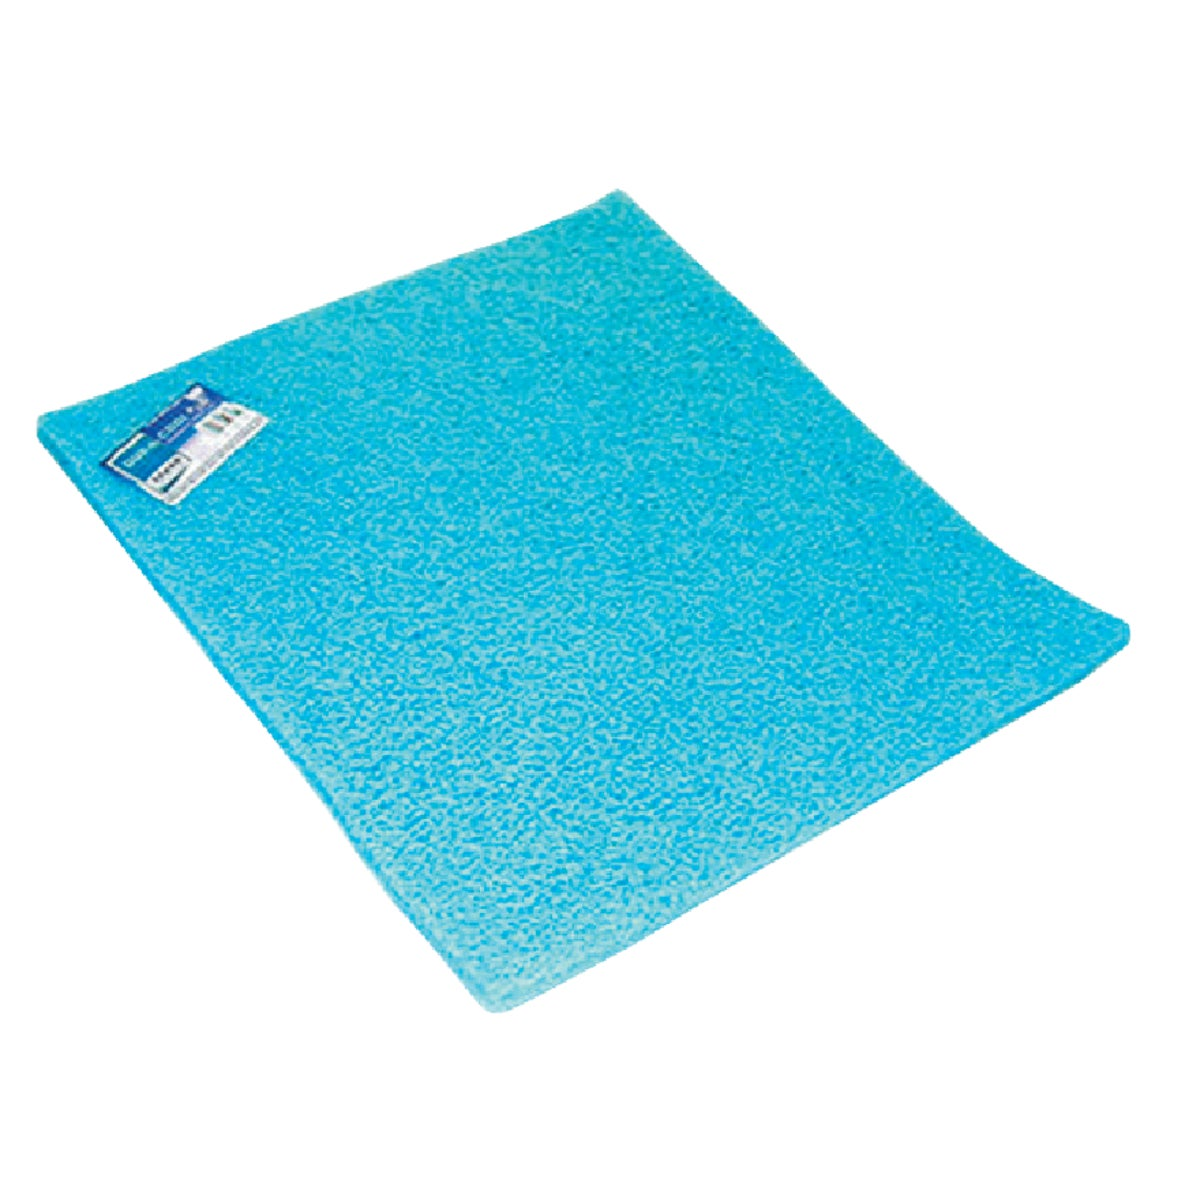 28X34 PAD DURA-COOL - 3072 by Dial Manufacturing